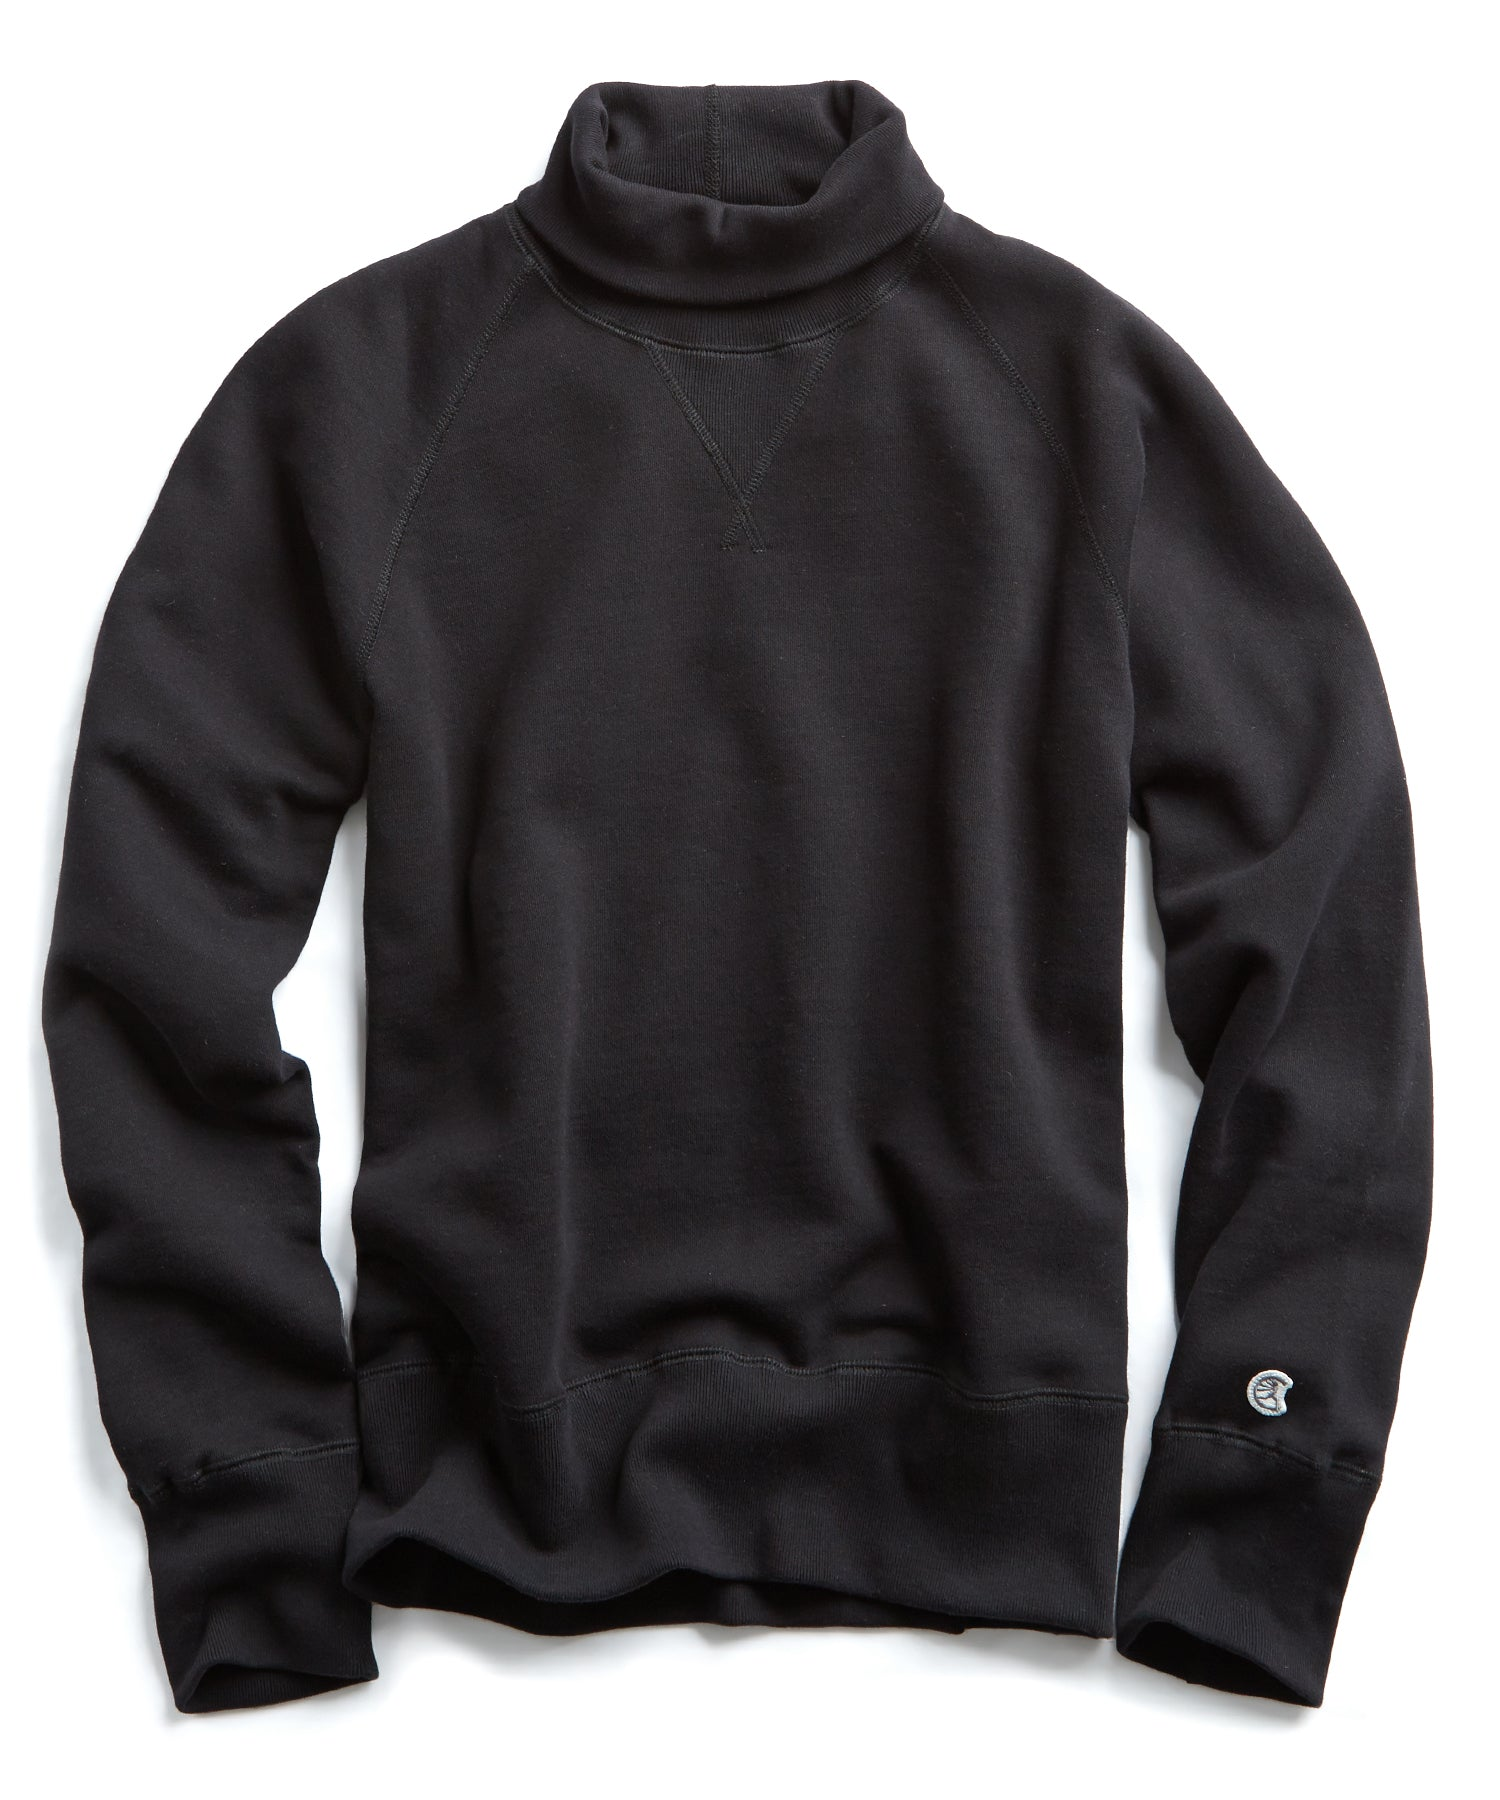 Heavyweight Turtleneck Sweatshirt in Black